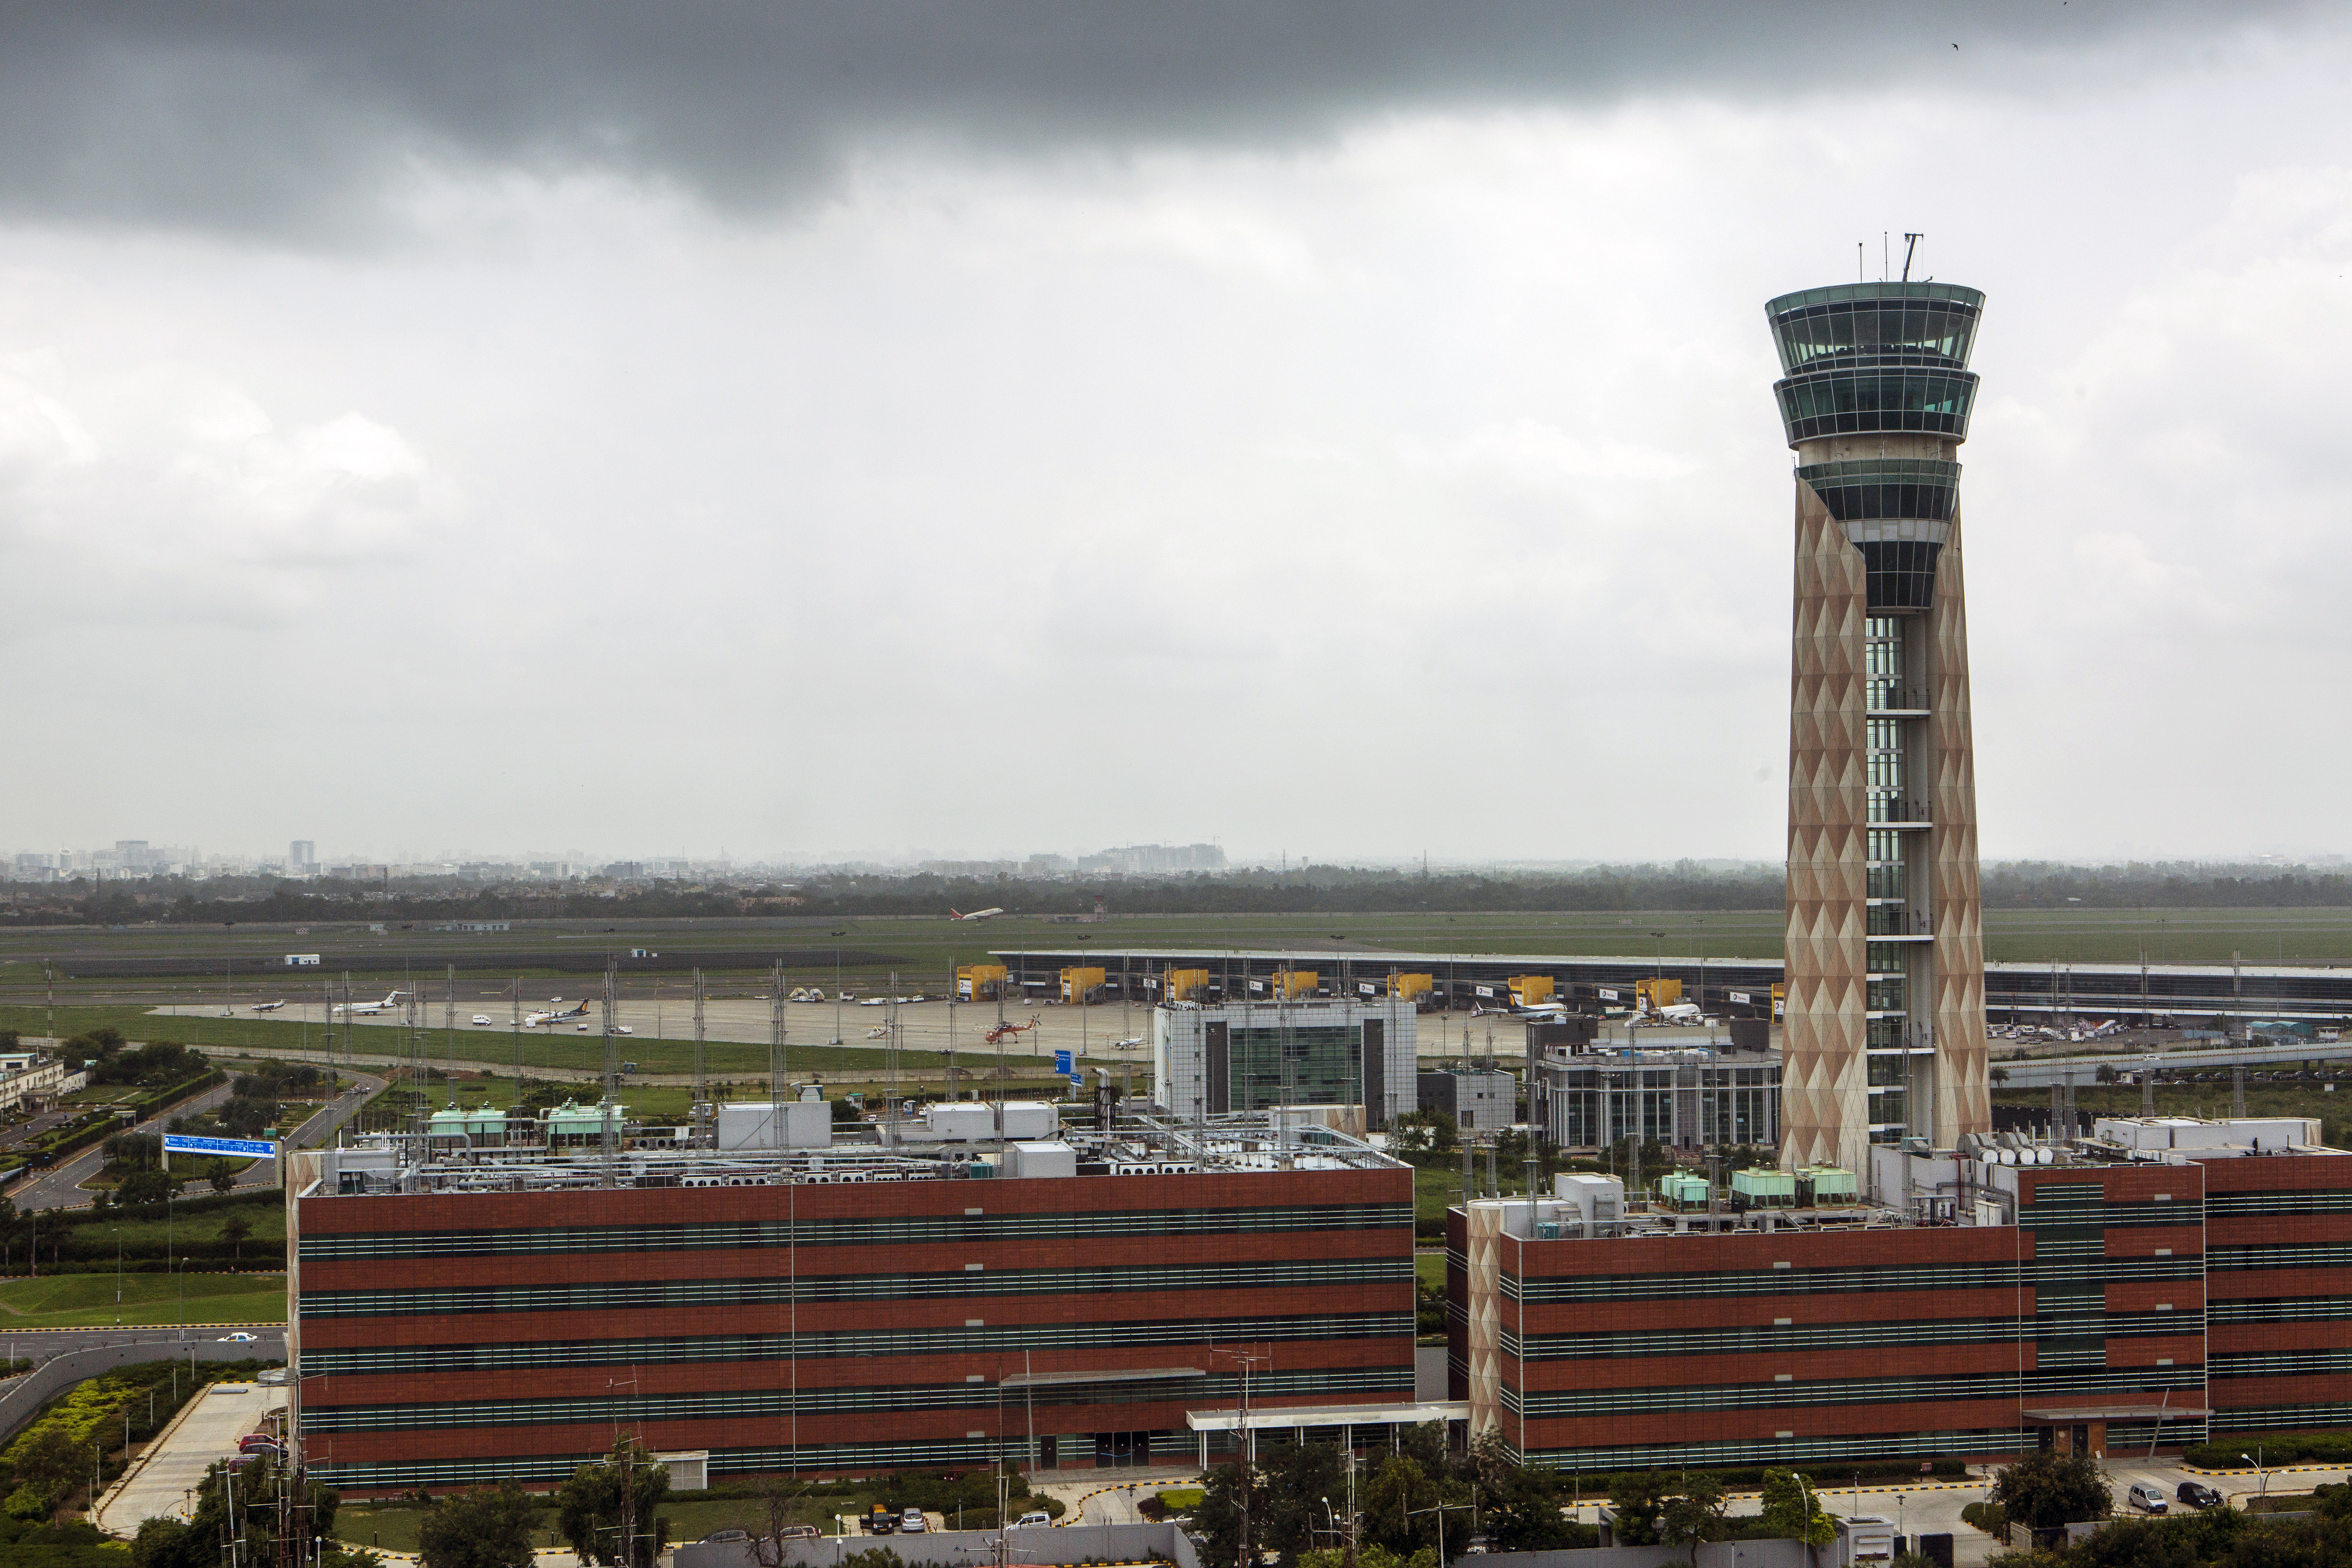 Flight operations suspended at Delhi airport after 'drone-like object' spotted on runway